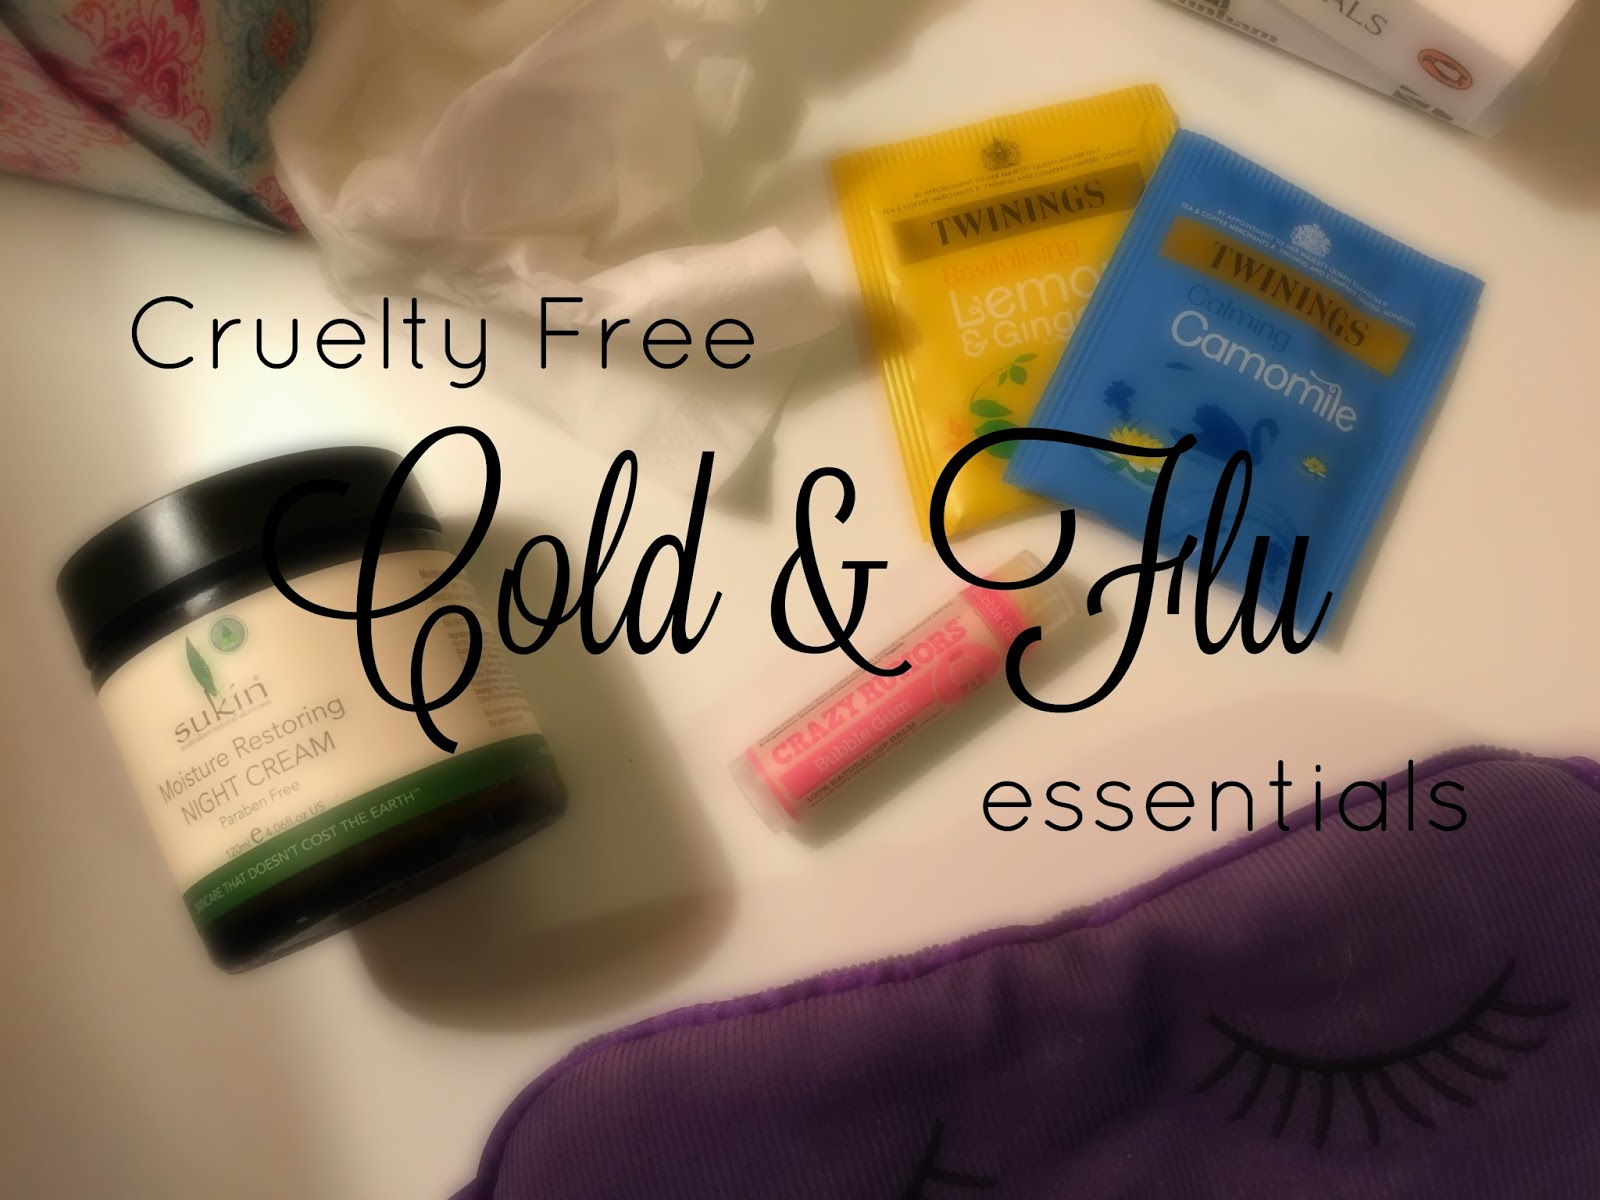 Cruelty Free Cold and Flu